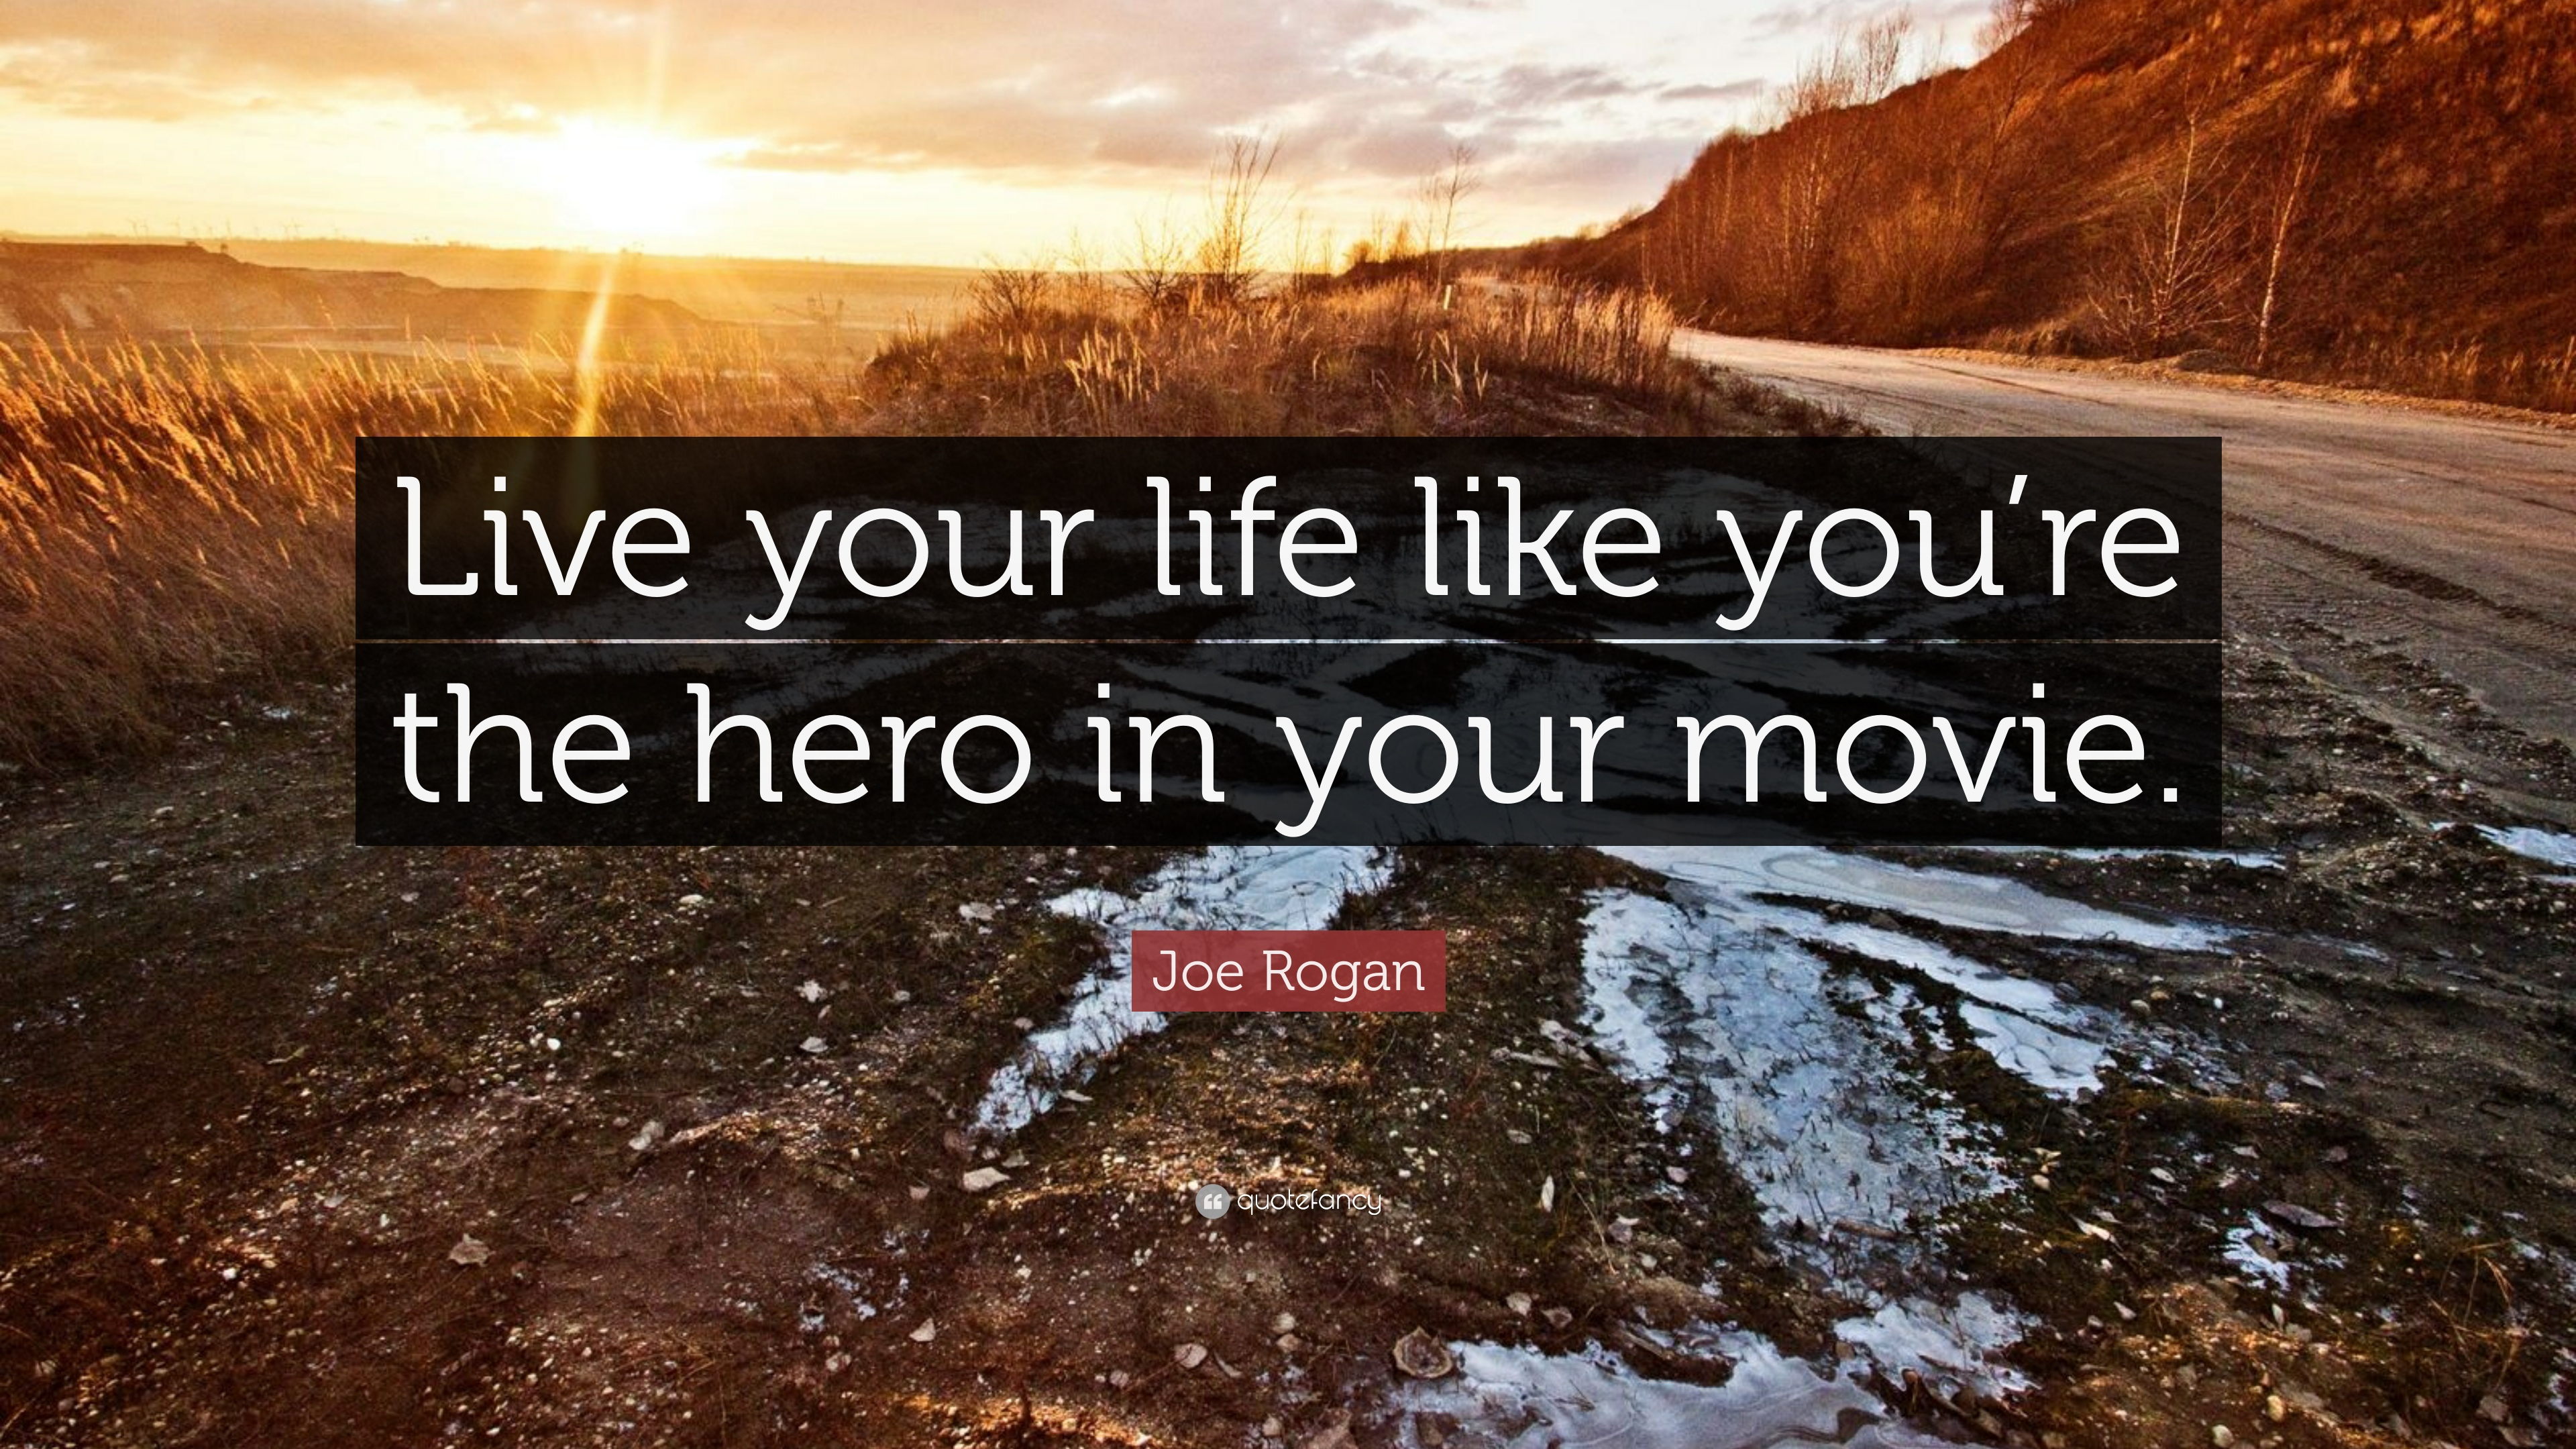 hero in your life (ofc regarding his time being alive) edward snowden or julian assange can be  considered heros however: with modern you ask for a hero in modern life of.